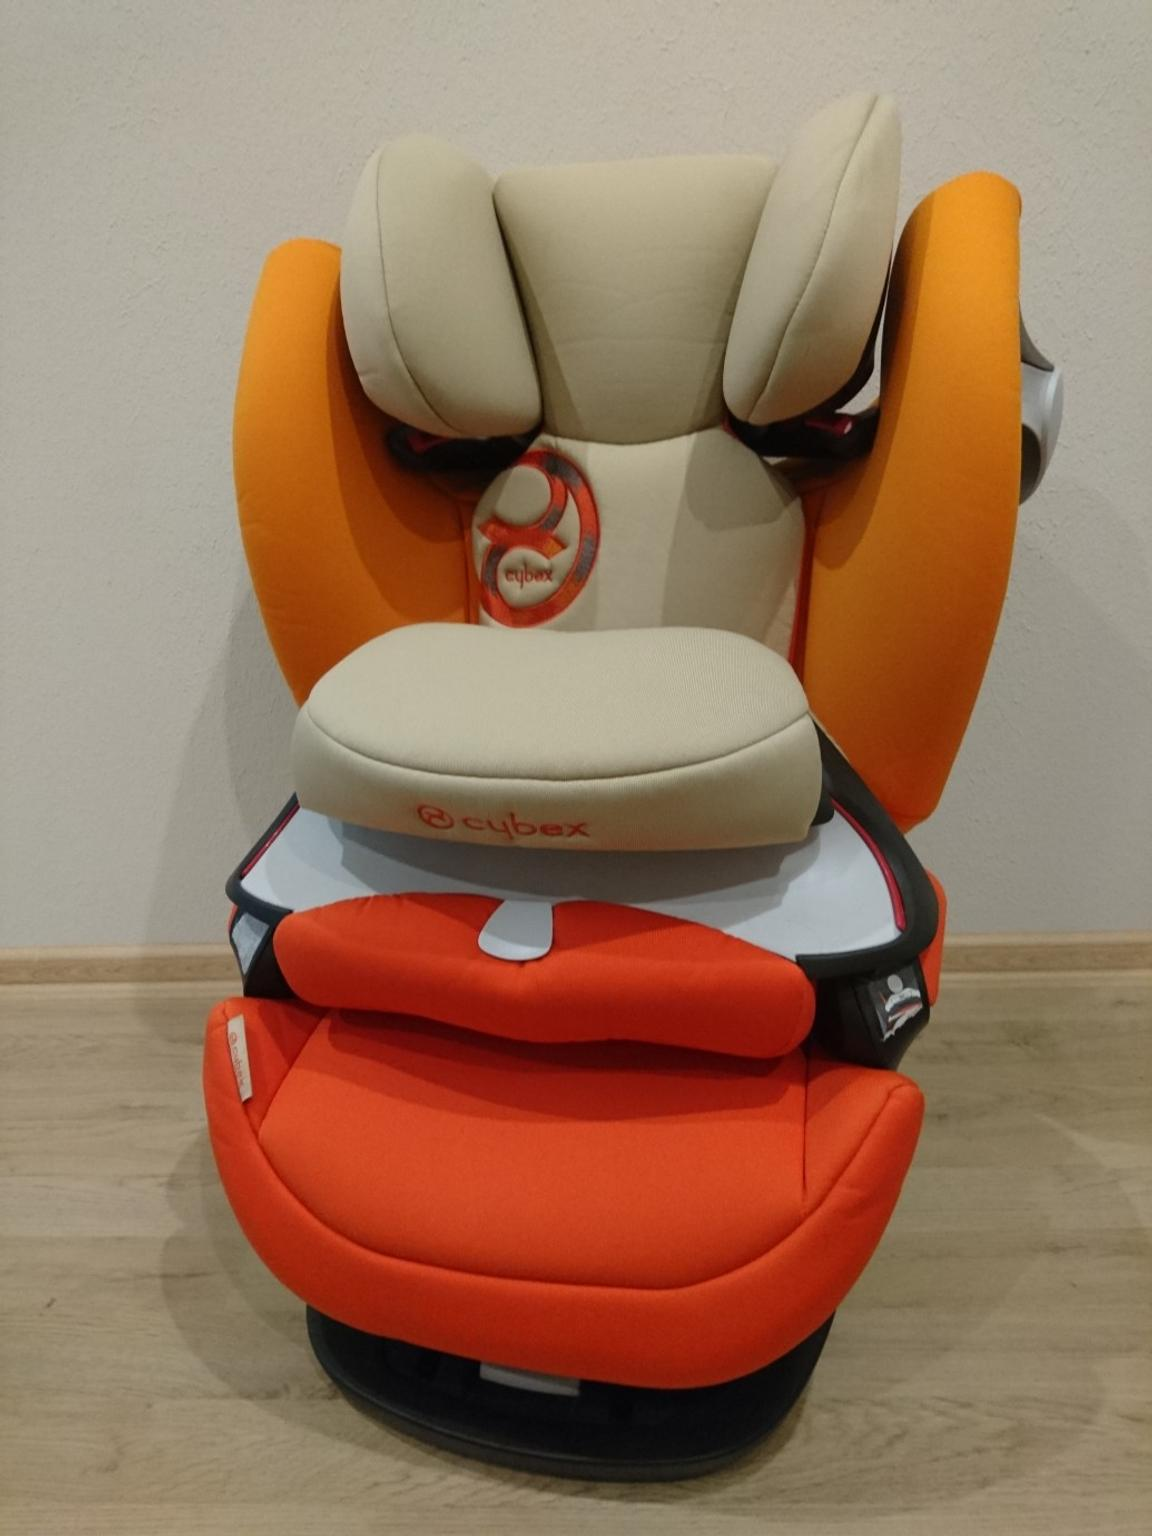 Autositz Für Kinder Ab 3 Cybex Pallas M Fix Gold In 67550 Rheindürkheim For €190 00